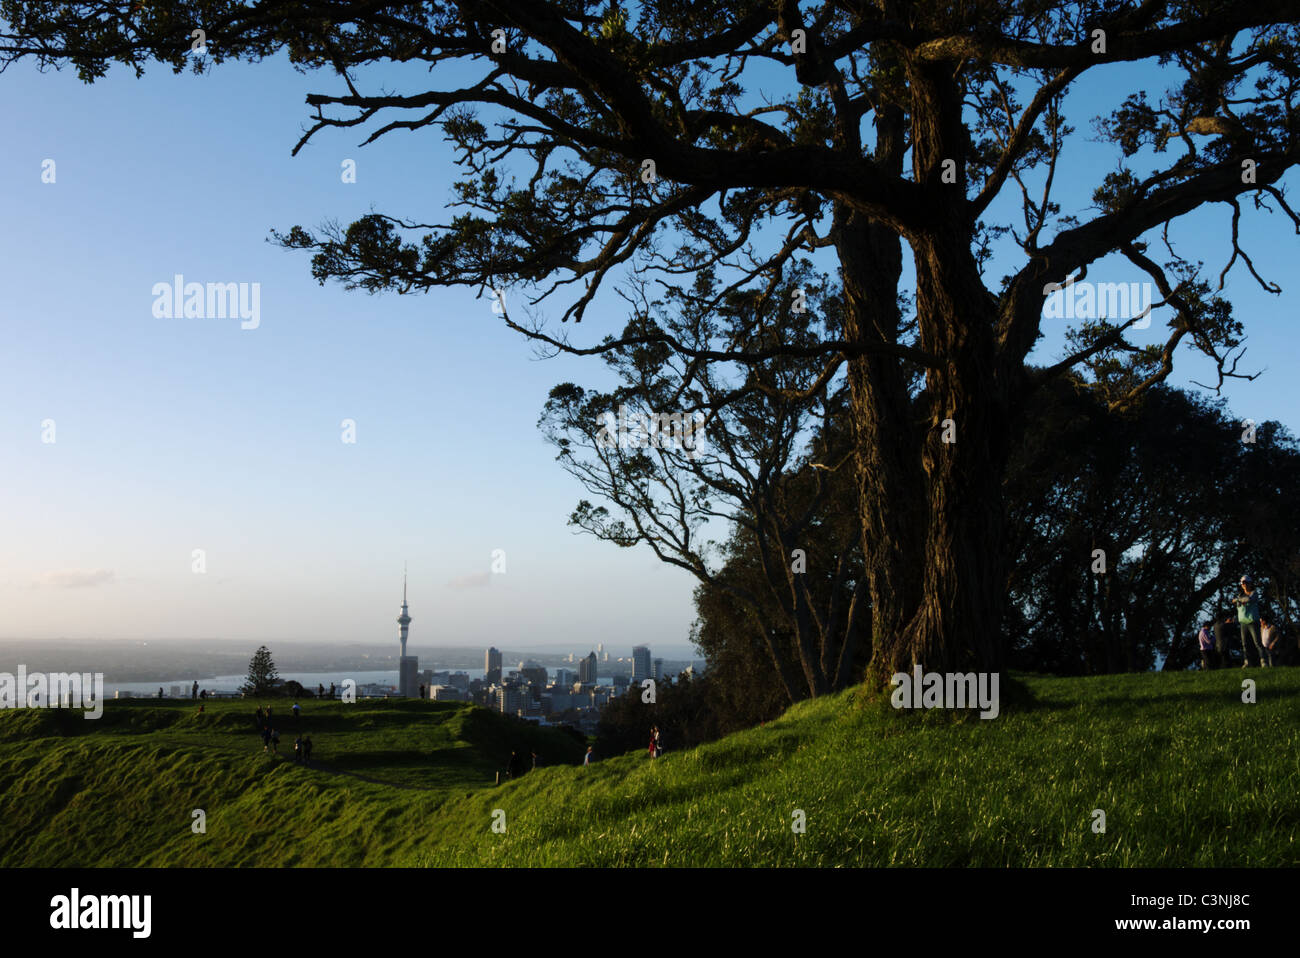 Auckland skyline including sky tower viewed from mt eden, the highest natural point in Auckland. - Stock Image